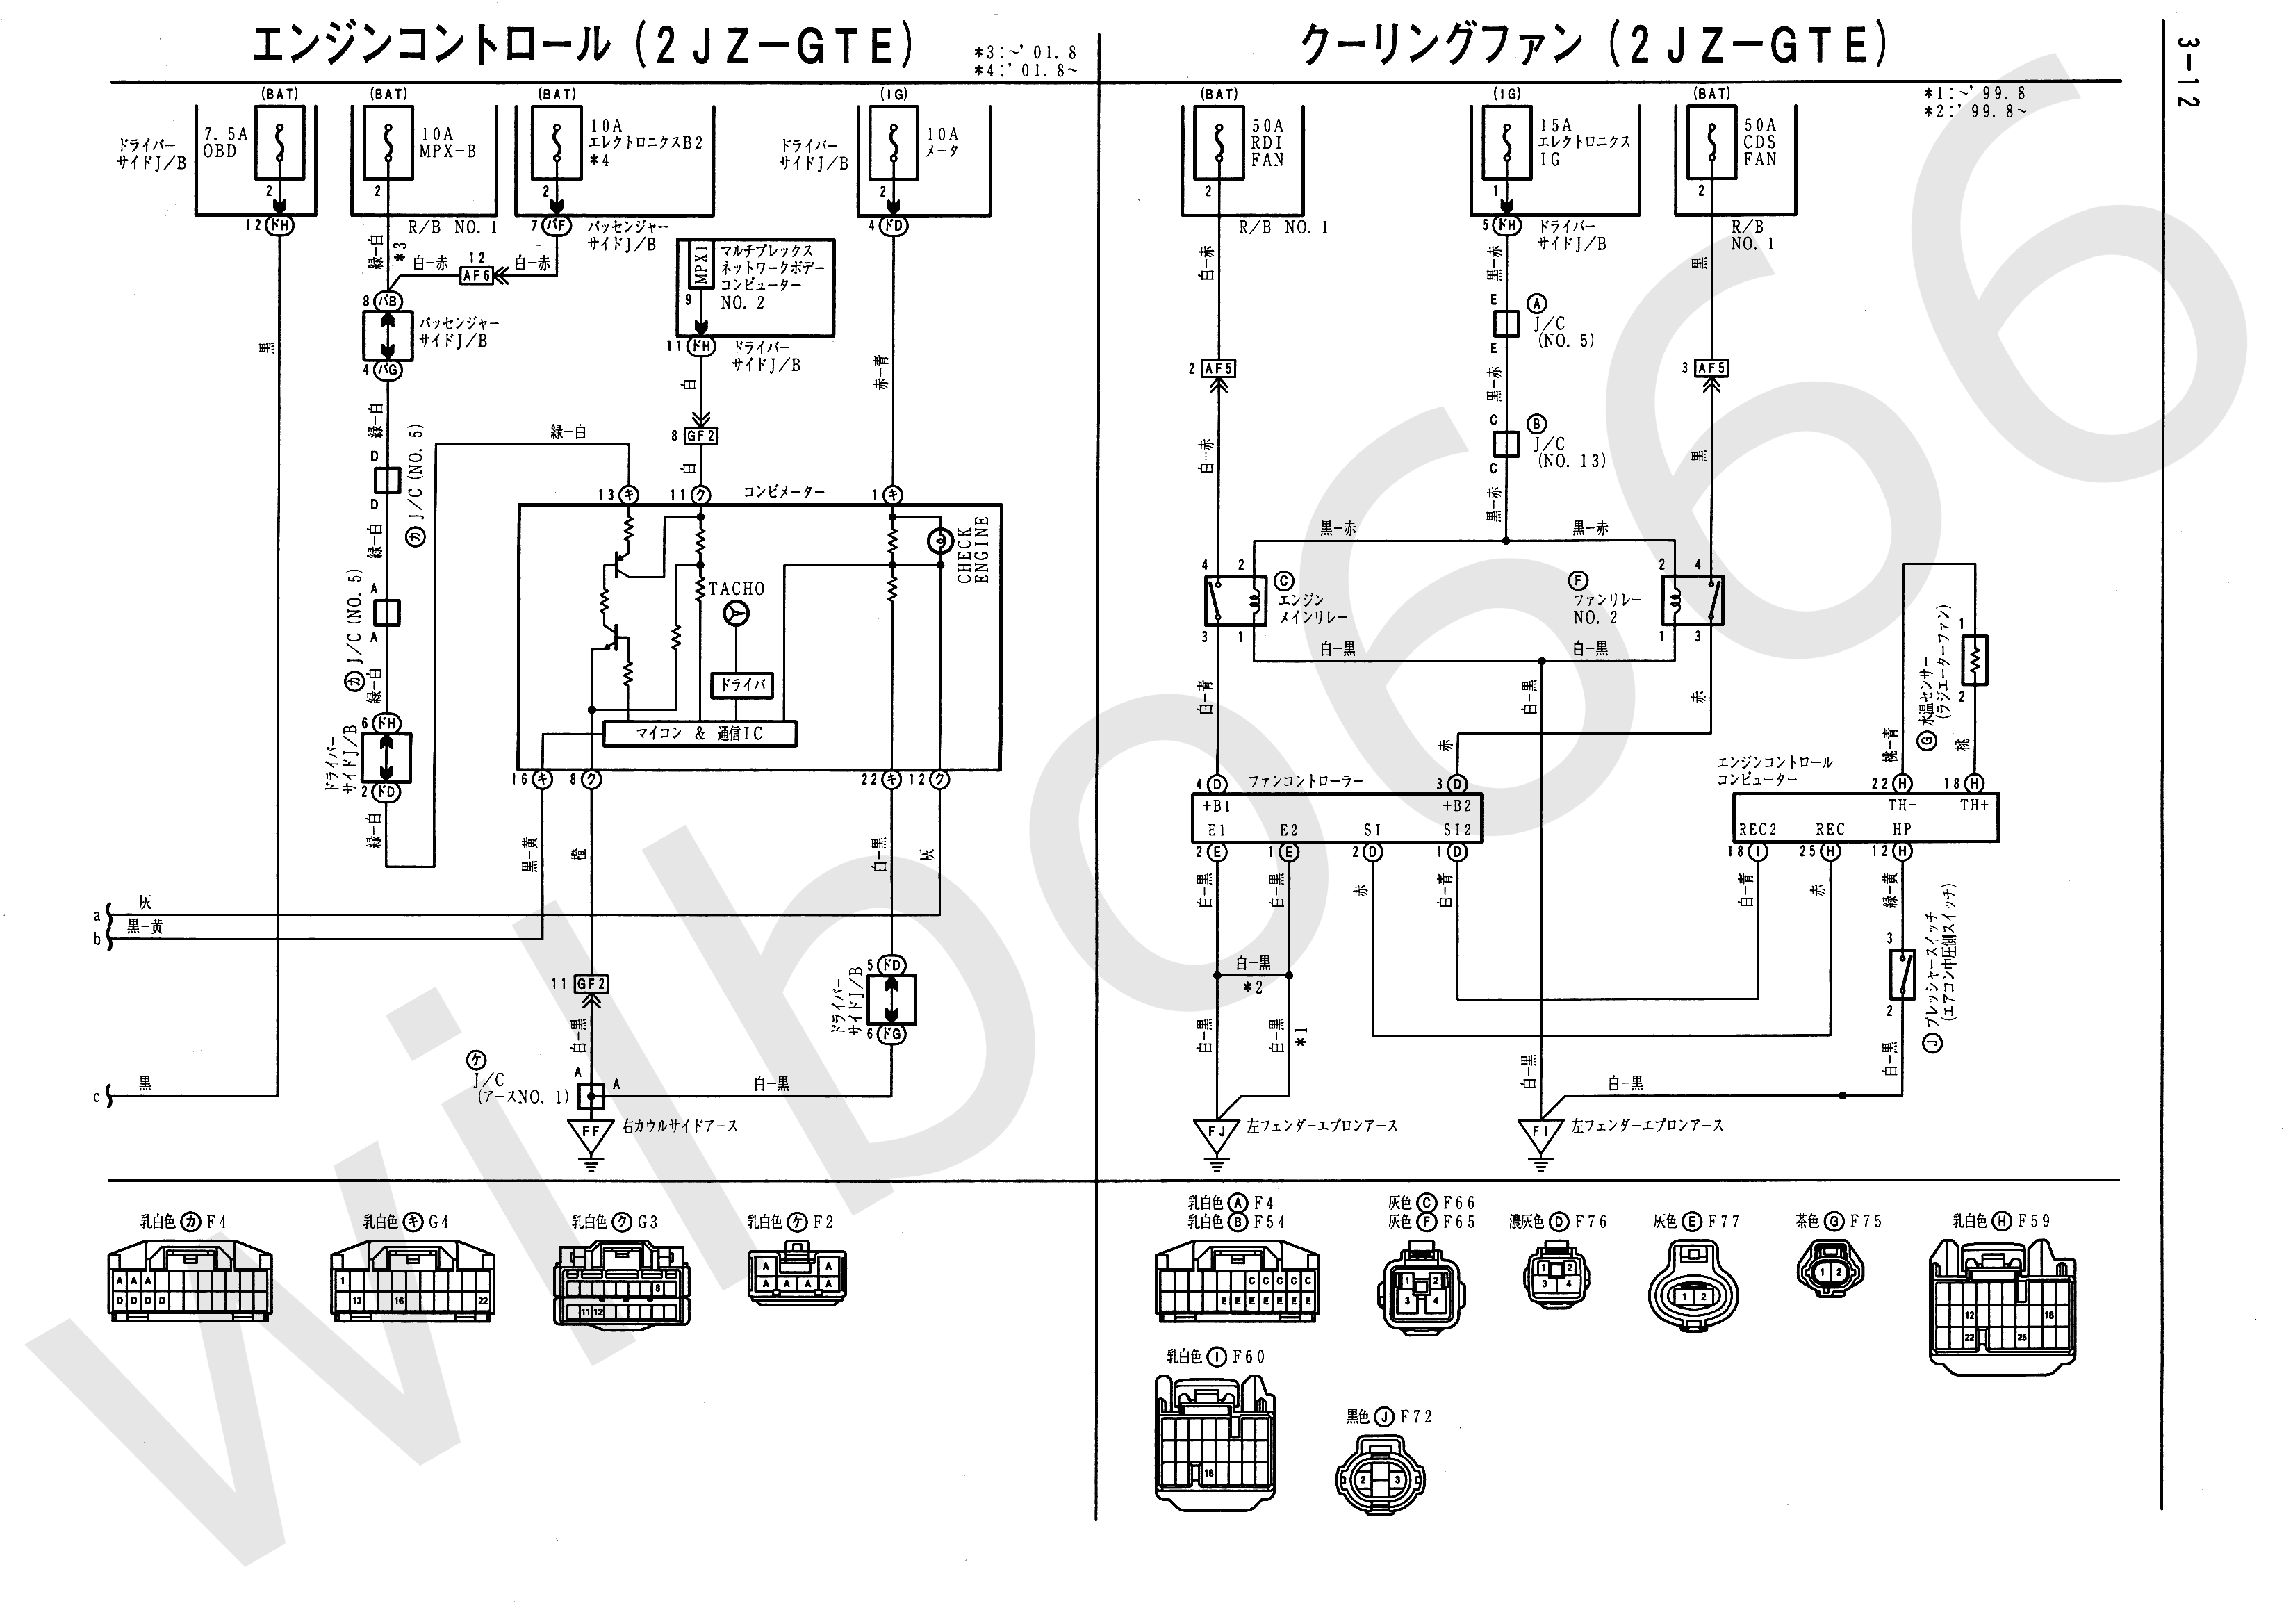 JZS161 Electrical Wiring Diagram 6748505 3 12?resize\\\=665%2C471 ge motor 1940s vintage wiring question on ge motor wiring diagram ge ecm x13 motor wiring diagram at panicattacktreatment.co